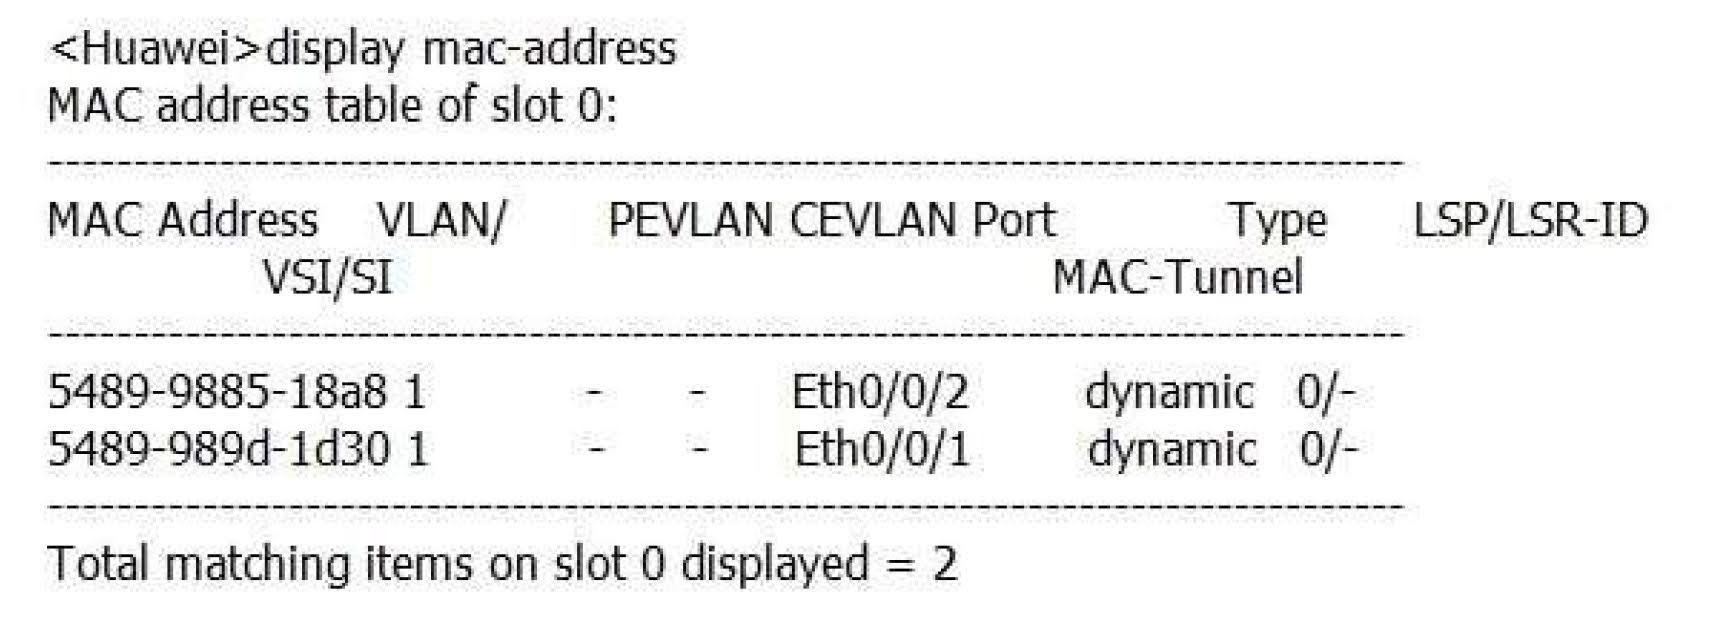 The MAC address table of a switch is as follows. If the switch receives a data frame whose destination MAC address is 5489-9885-18a8 from Eth0/0/2, which of the following statements is true?